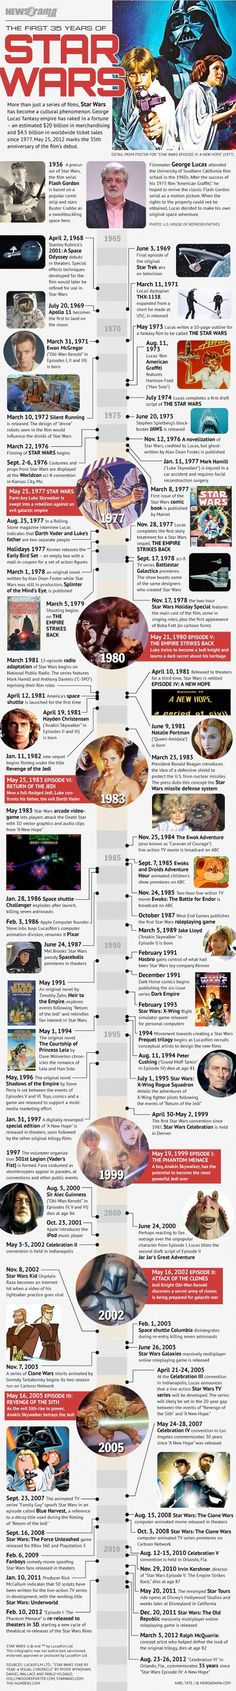 The First 35 Years Of Star Wars #infographic